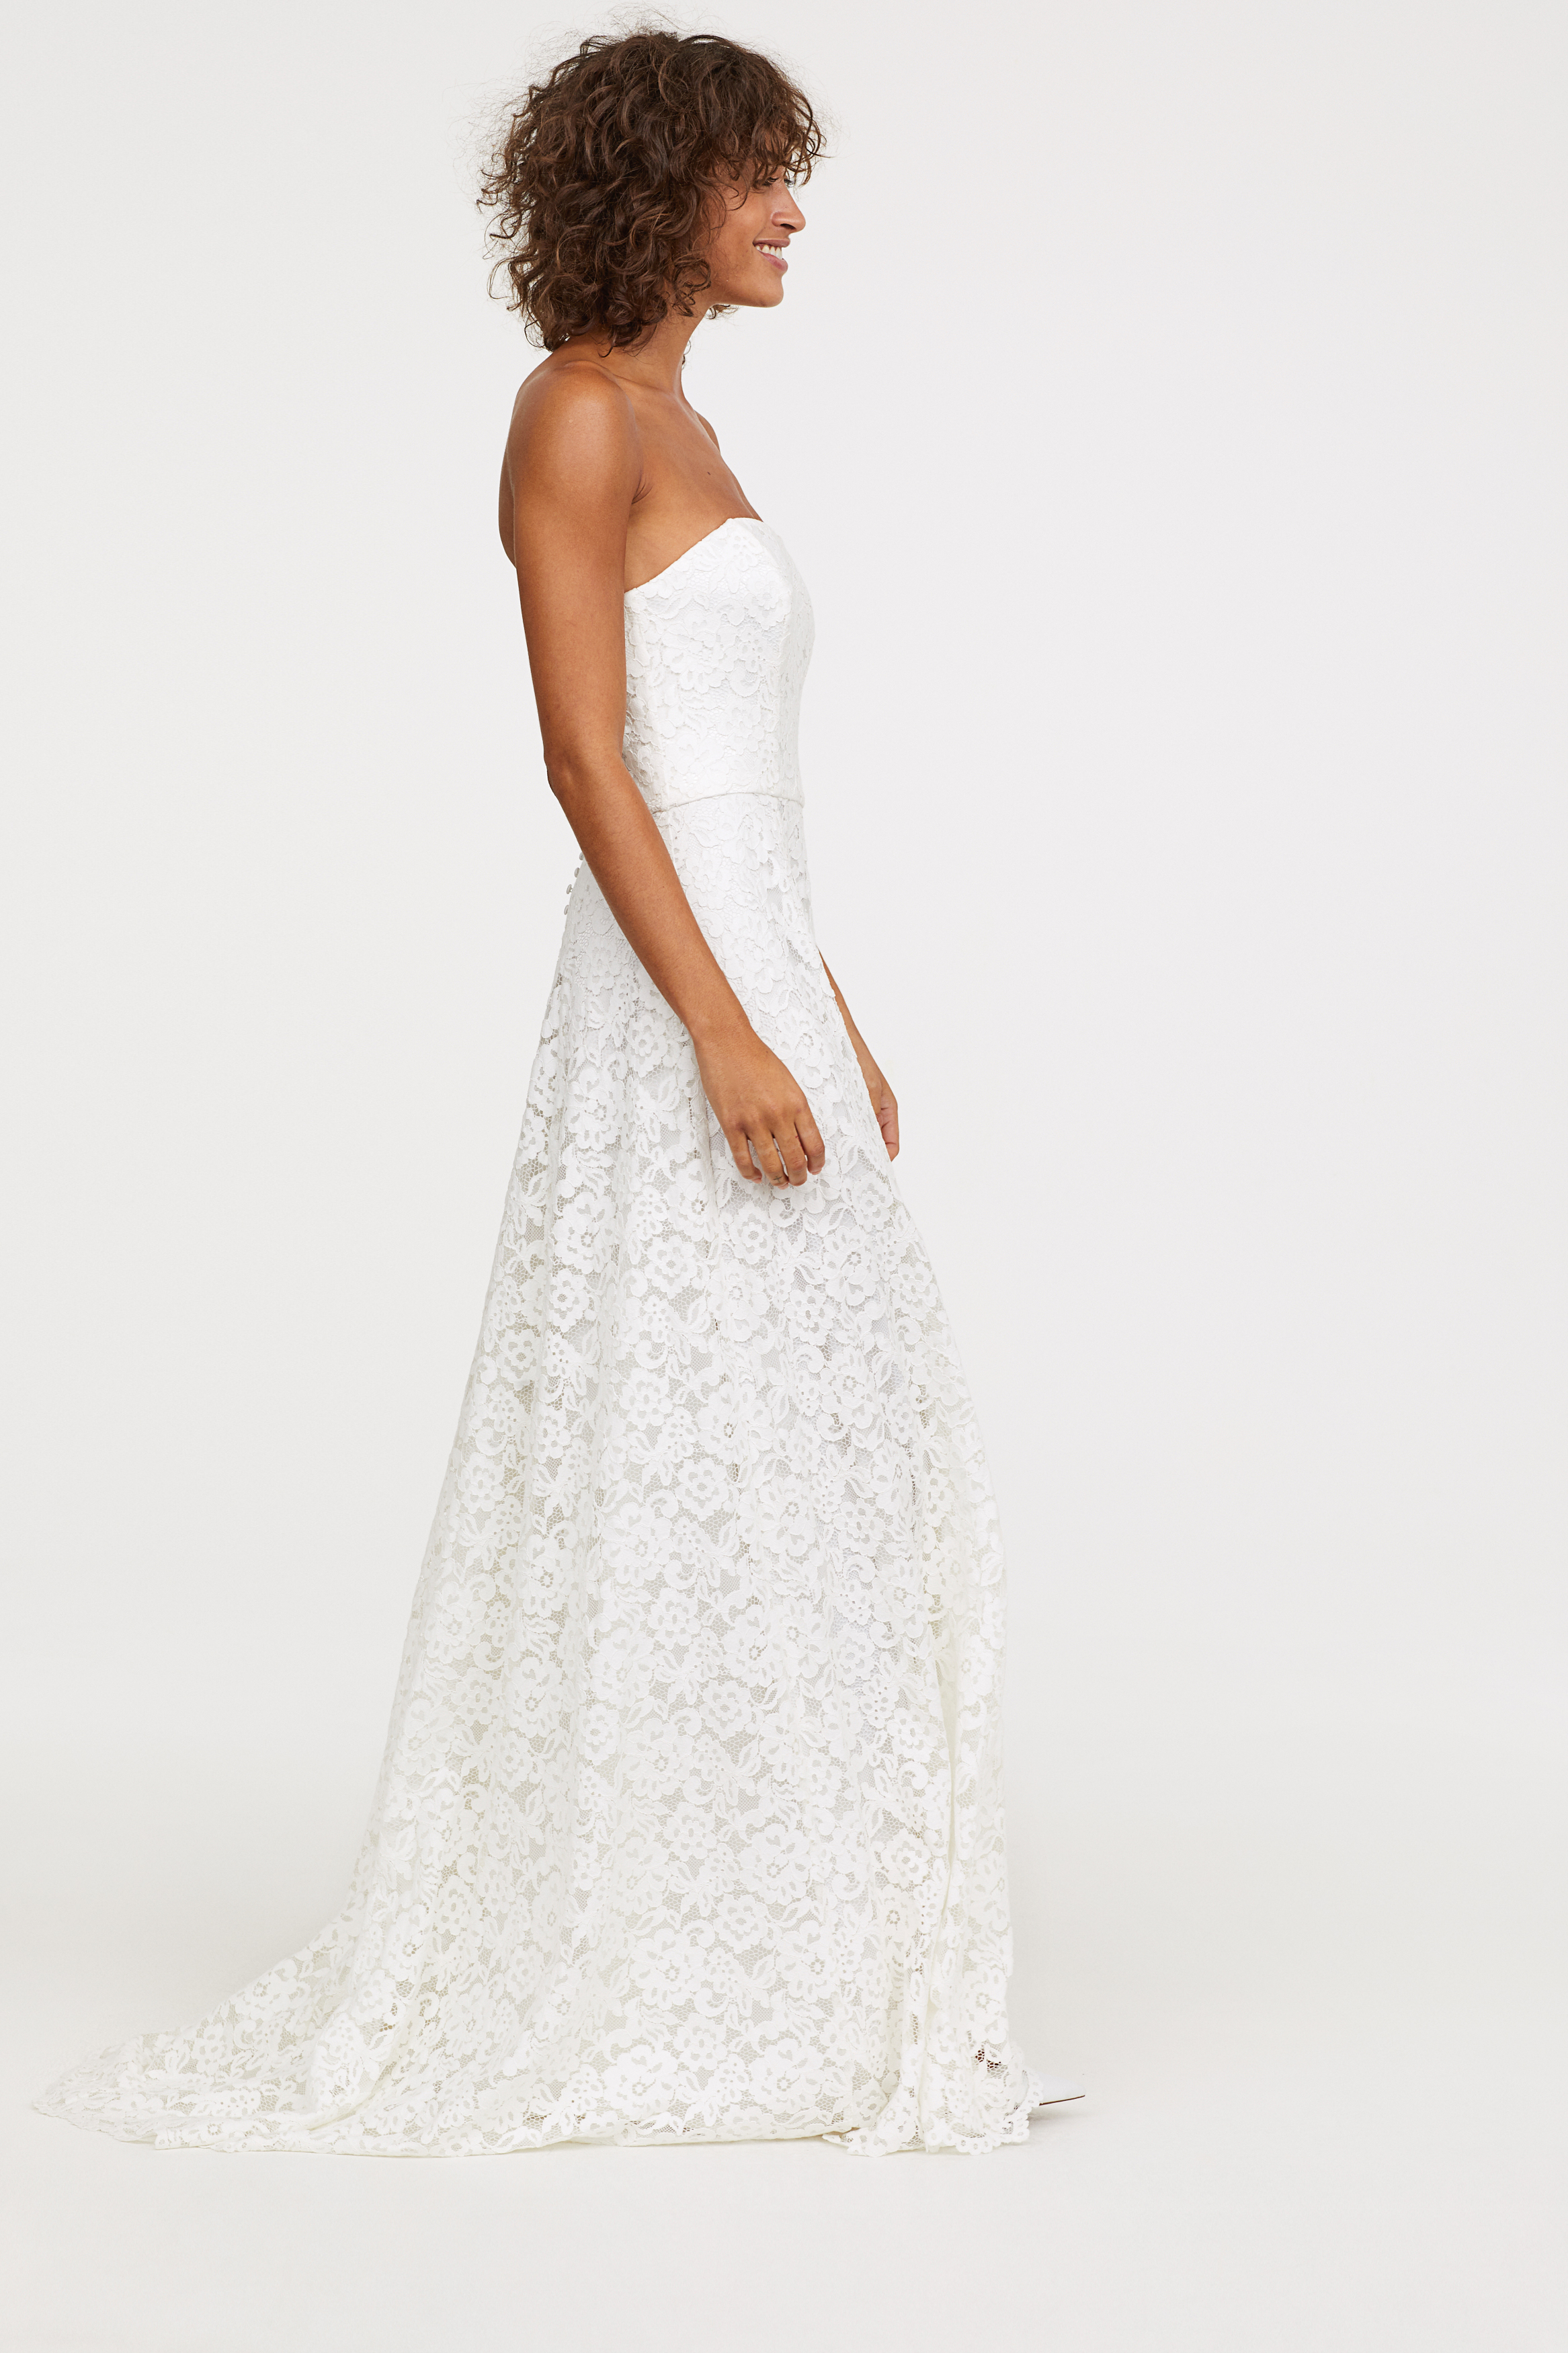 317729fc64a H M Adds Royal-Inspired Pieces to Its Bridal Shop—And Everything Is ...